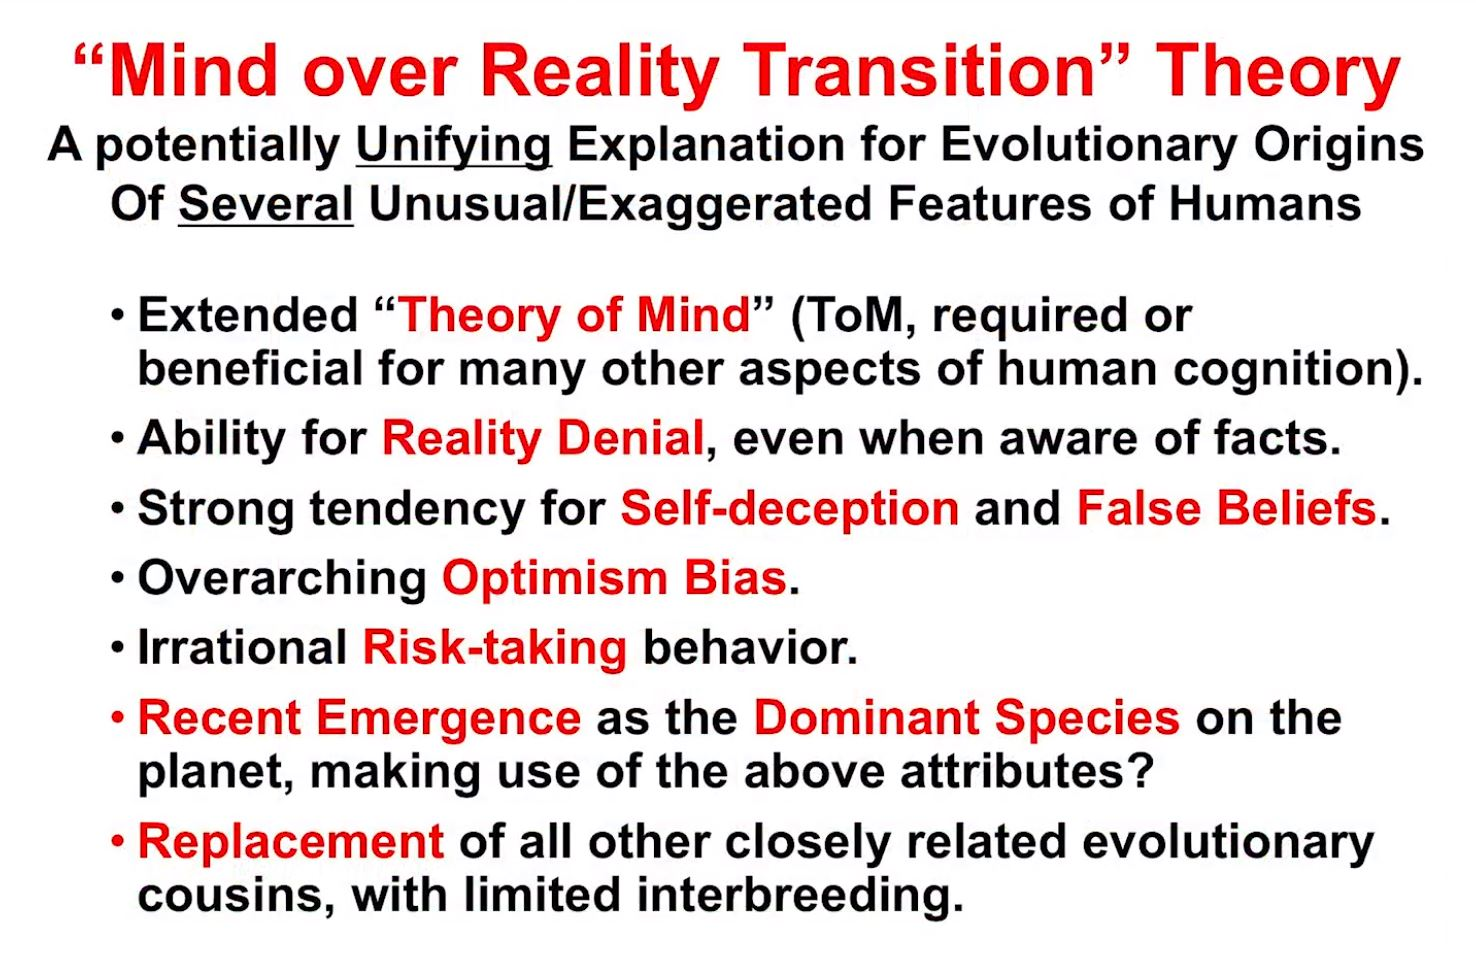 Mind Over Reality Transition (MORT) Implications